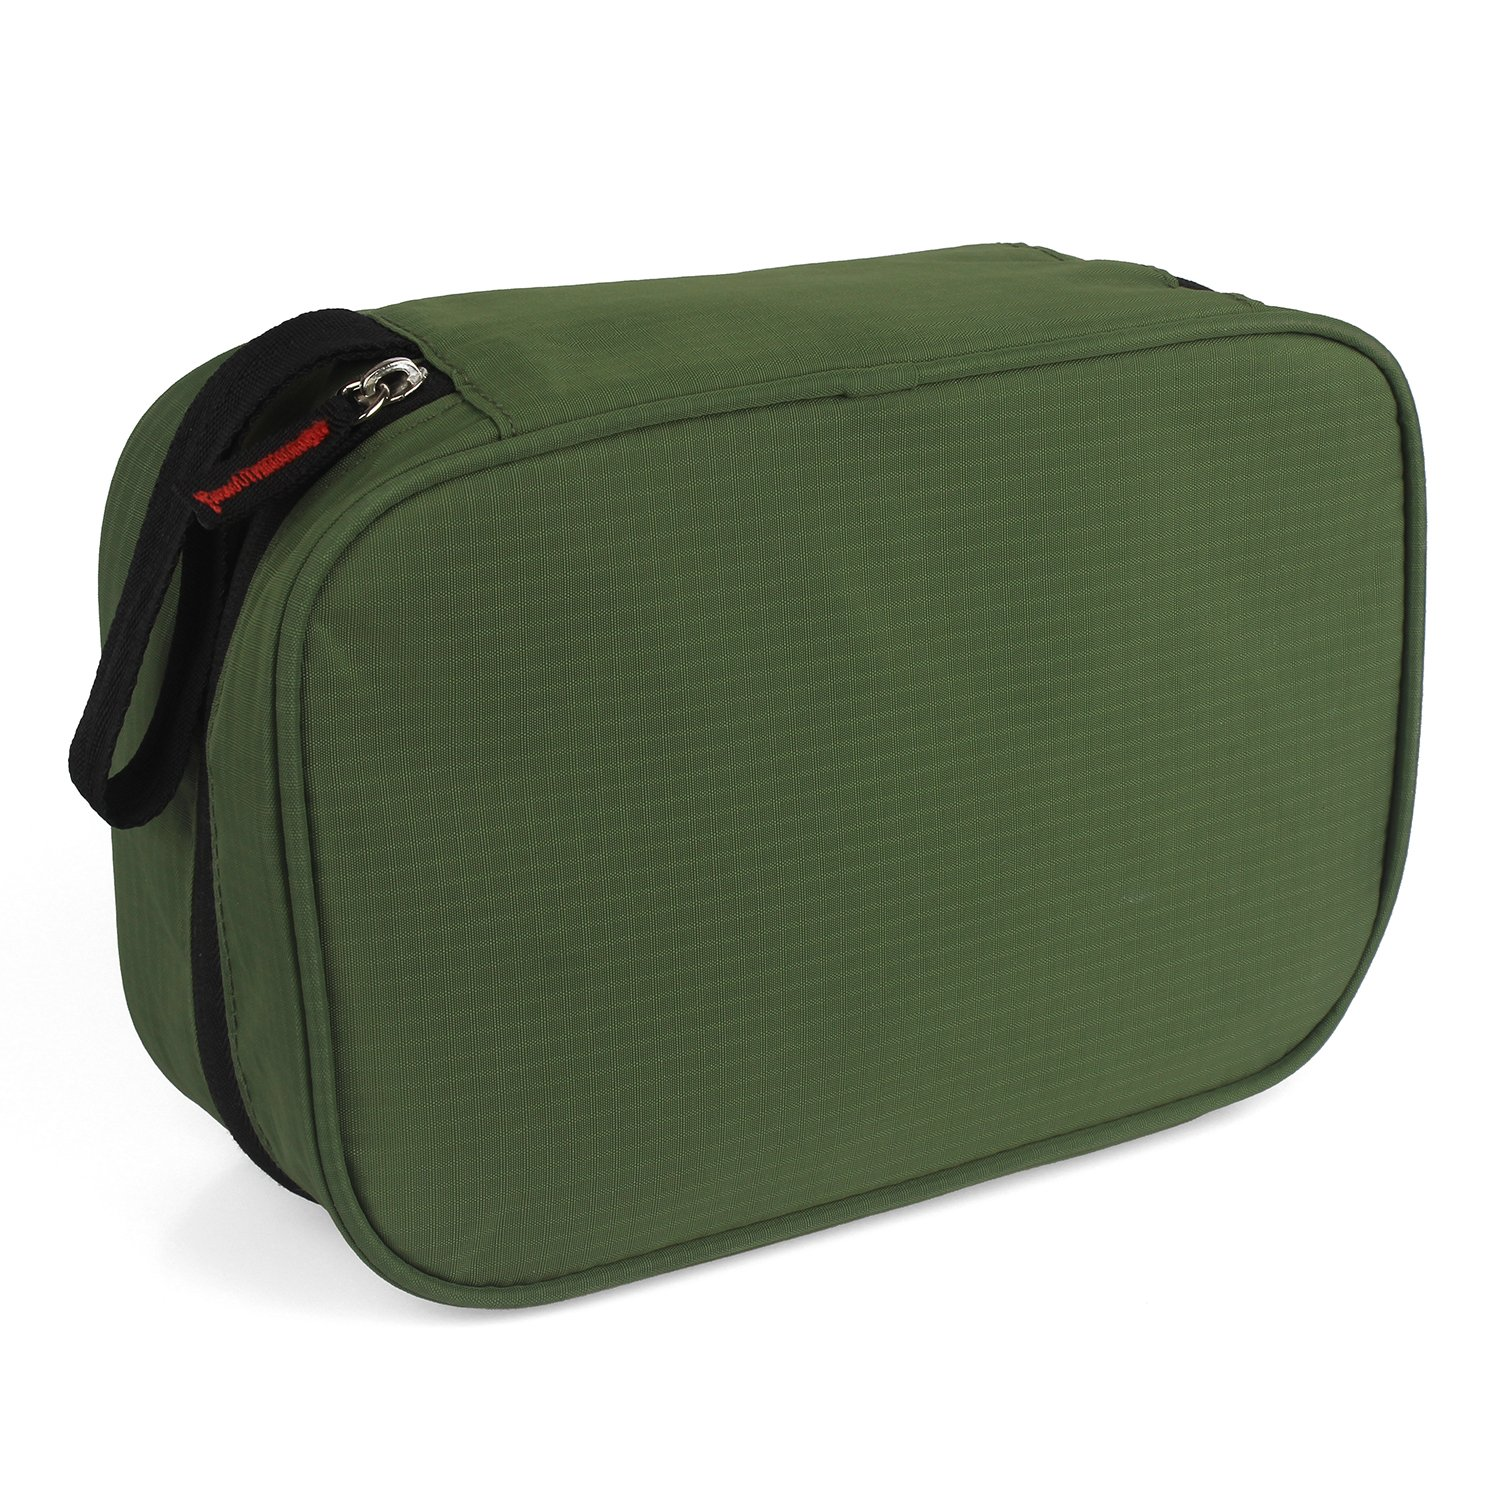 Dopobo Travelling Toiletry Bag Portable Hanging Water-Resistant Wash Bag for Travelling, Business Trip, Camping (army green) by Dopobo (Image #4)